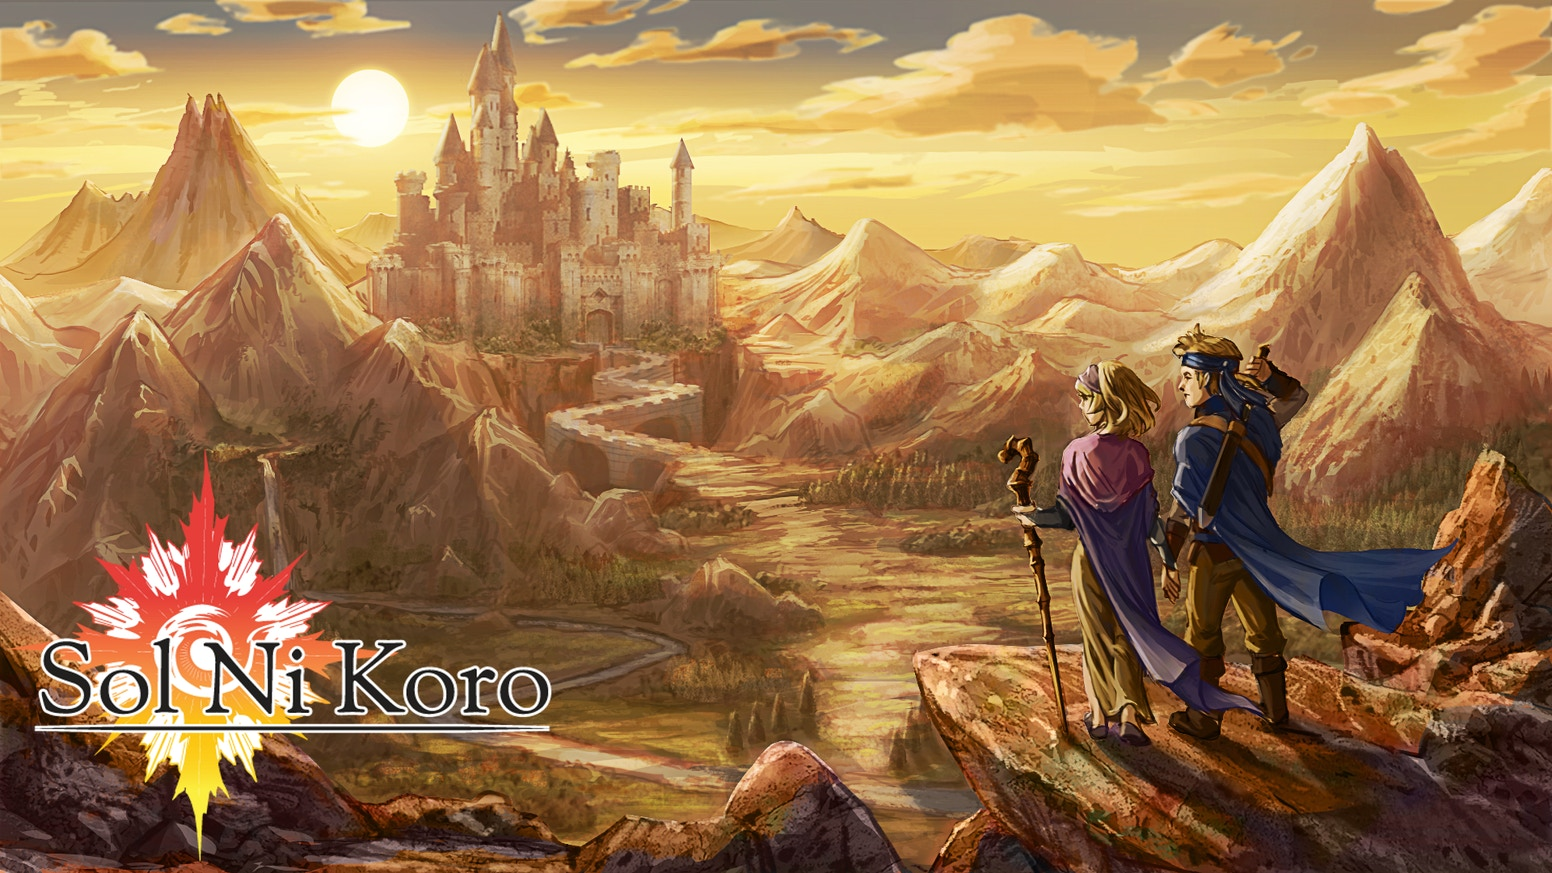 Sol Ni Koro A Handcrafted 3d Rpg With 2d Pixel Sprites By